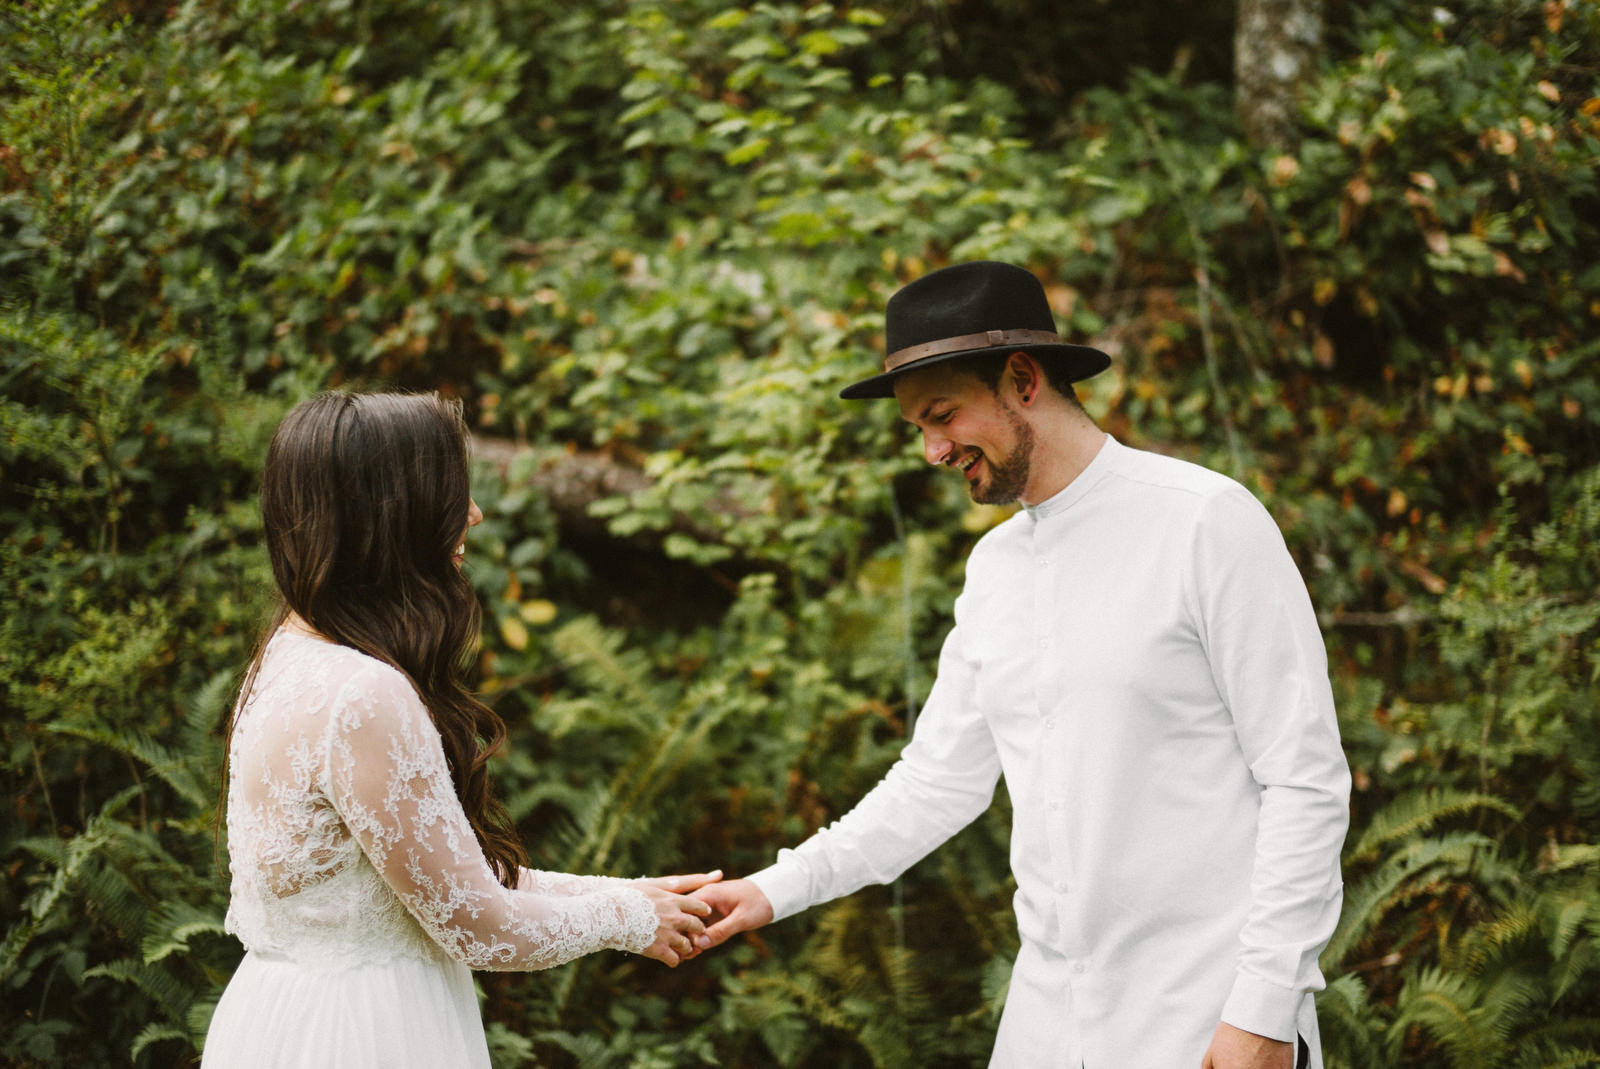 athena-and-camron-seattle-elopement-wedding-benj-haisch-rattlesnake-lake-christian-couple-goals4